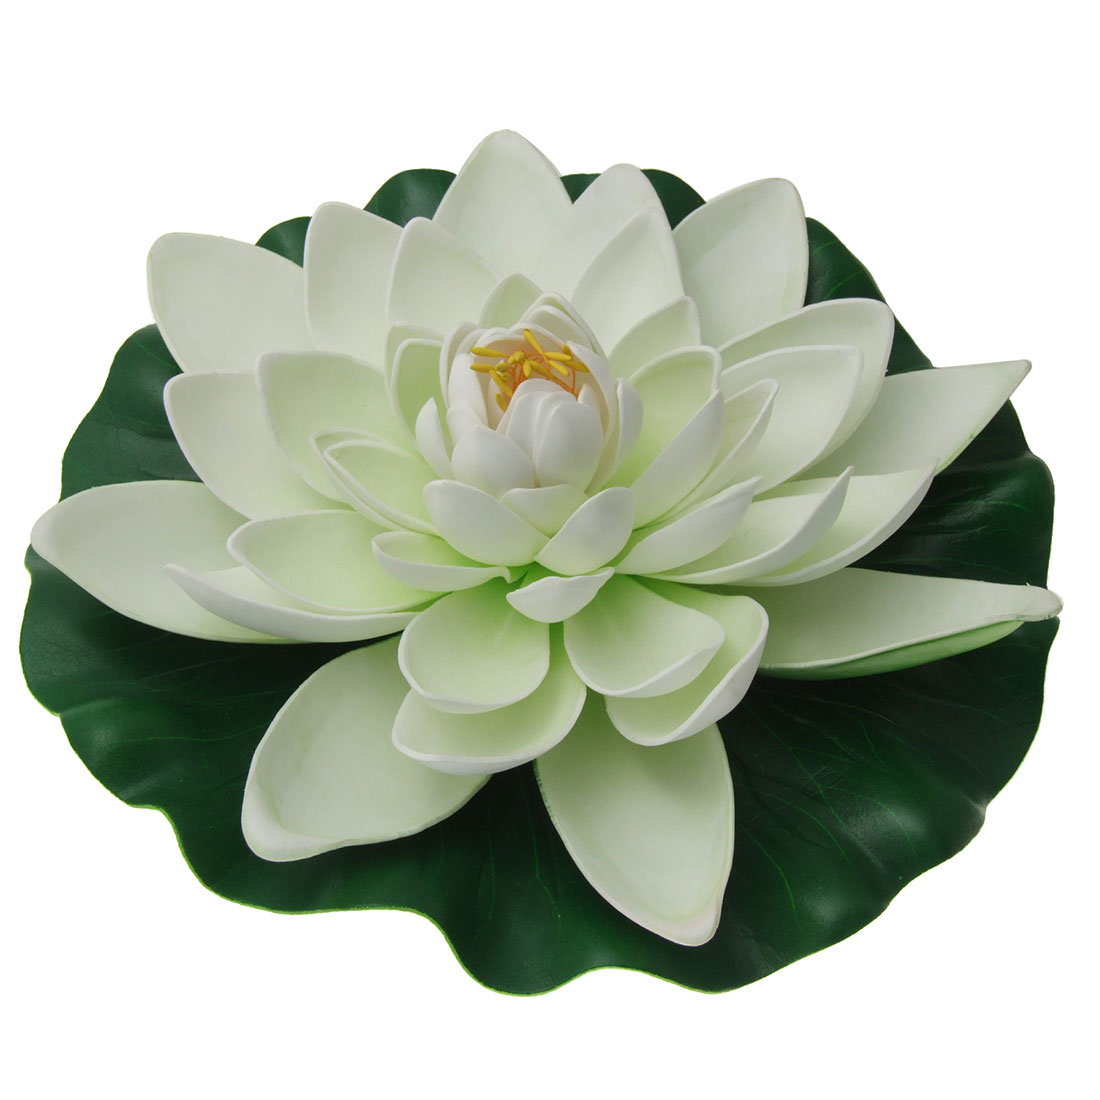 Foam White Lotus Green Base Ornament Decor for Aquarium